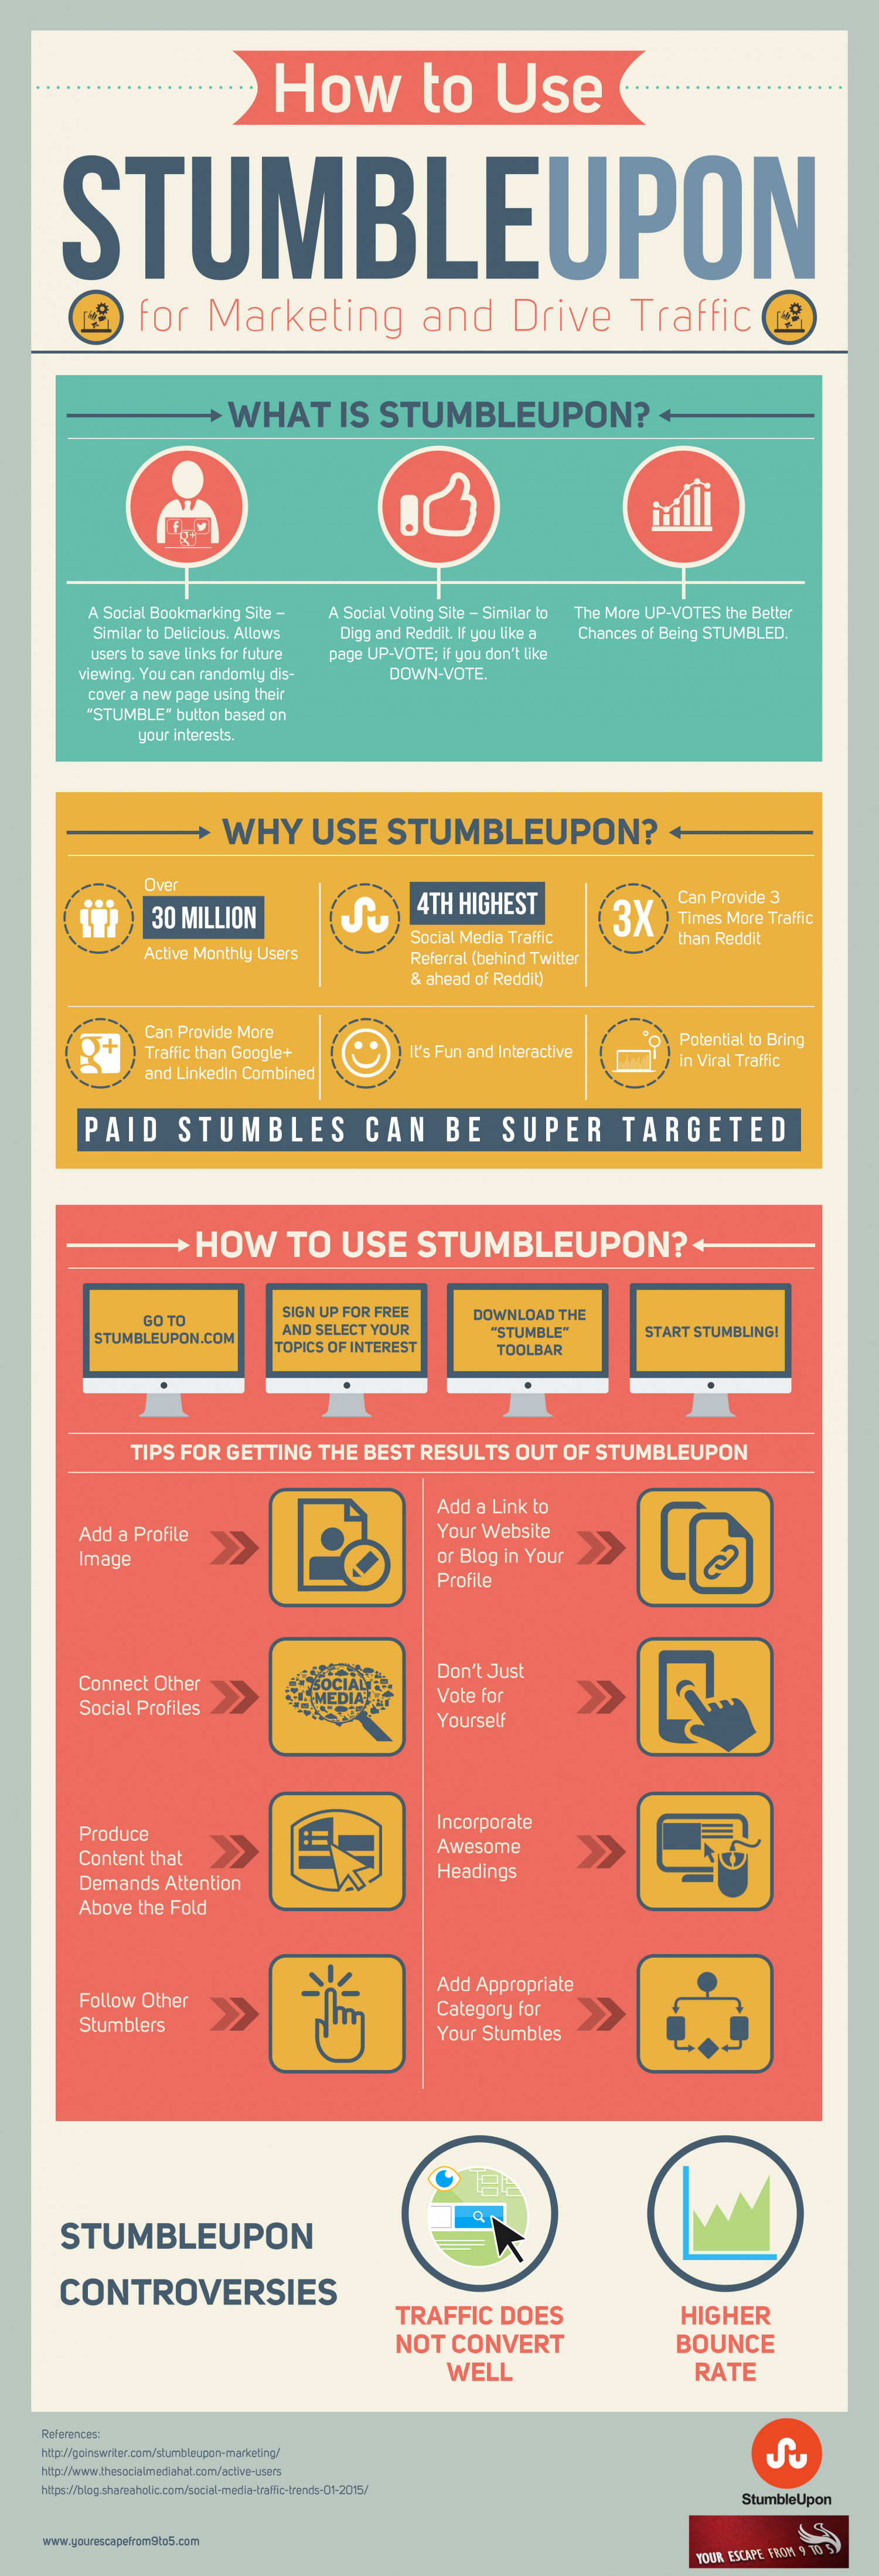 How to Use StumbleUpon to Drive Traffic and Marketing – INFOGRAPHIC Infographic